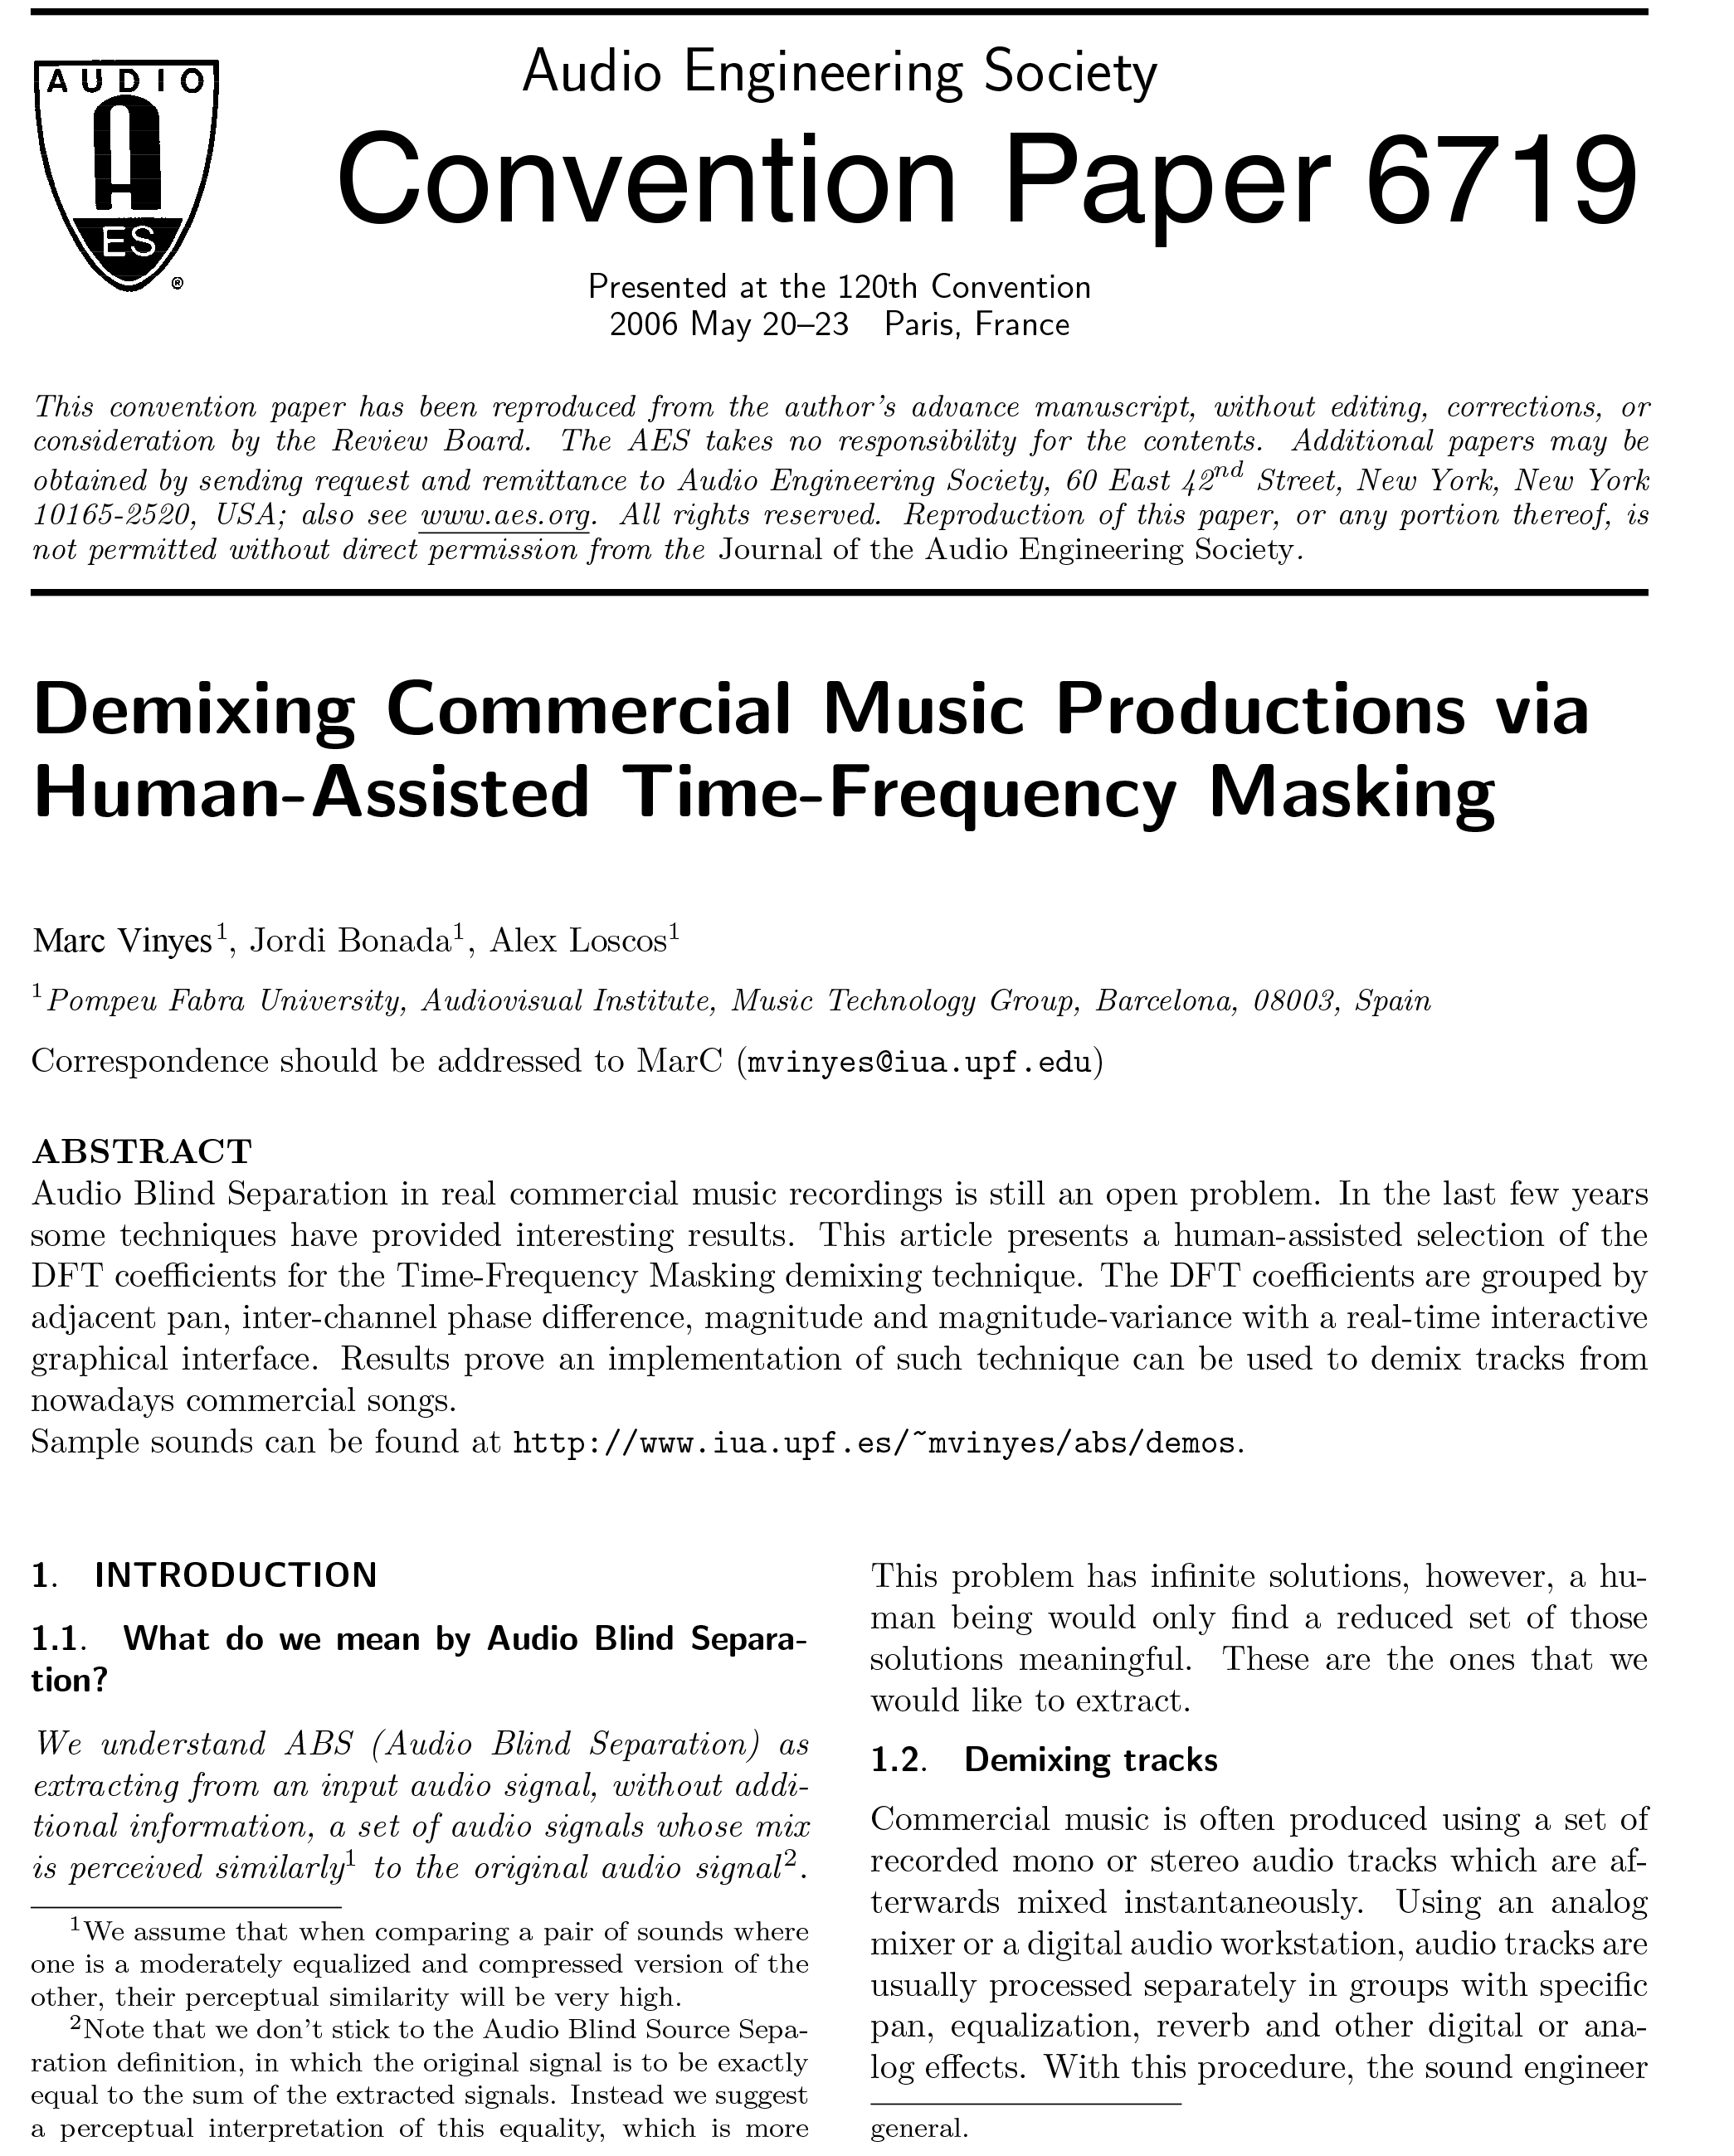 """azimuth discrimination and resynthesis Citeseerx - document details (isaac councill, lee giles, pradeep teregowda): by extracting one or more instruments from one piece of music and mixing them with instruments from another, a professional dj is able to create a new, """"remixed """" music track."""